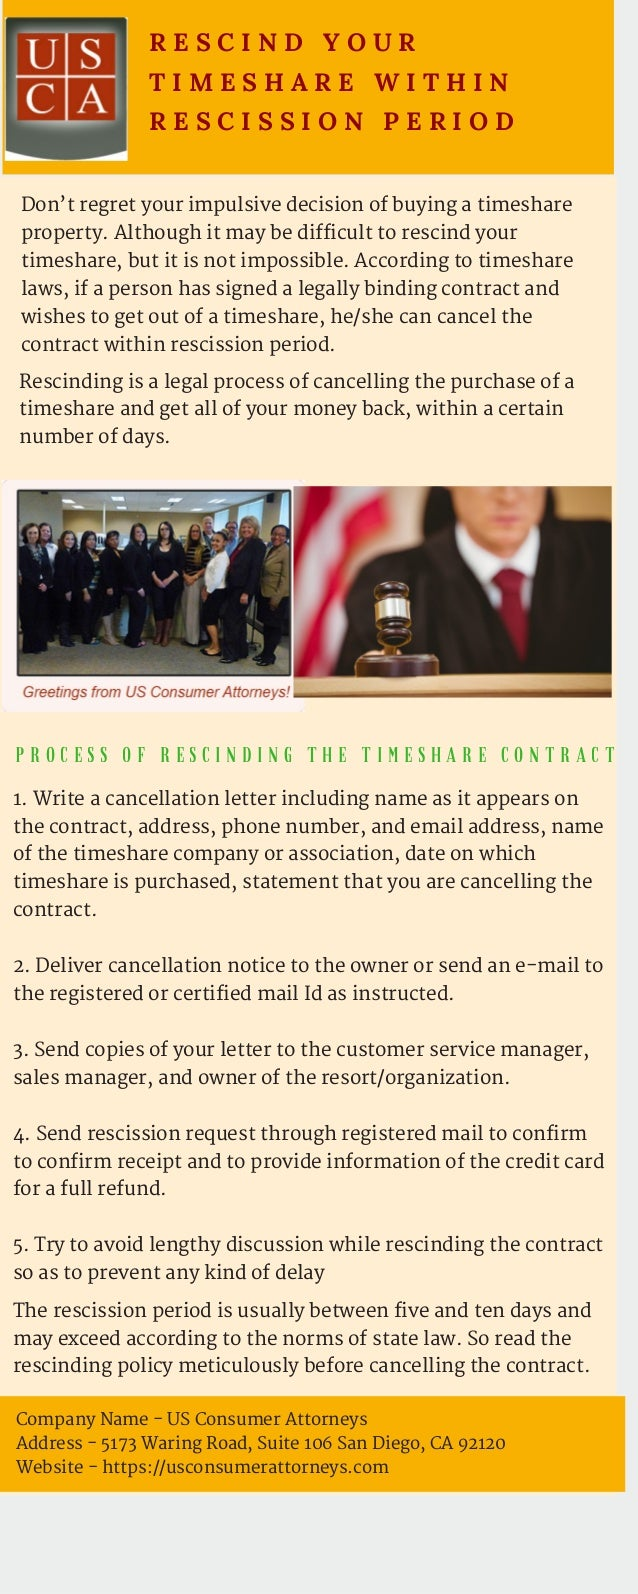 Timeshare news us consumer attorneys r e s c i n d y o u r t i m e s h a r e w i t h i n r e s c i s s i o n p e r i o d dont regret your impulsive decision o kristyandbryce Images